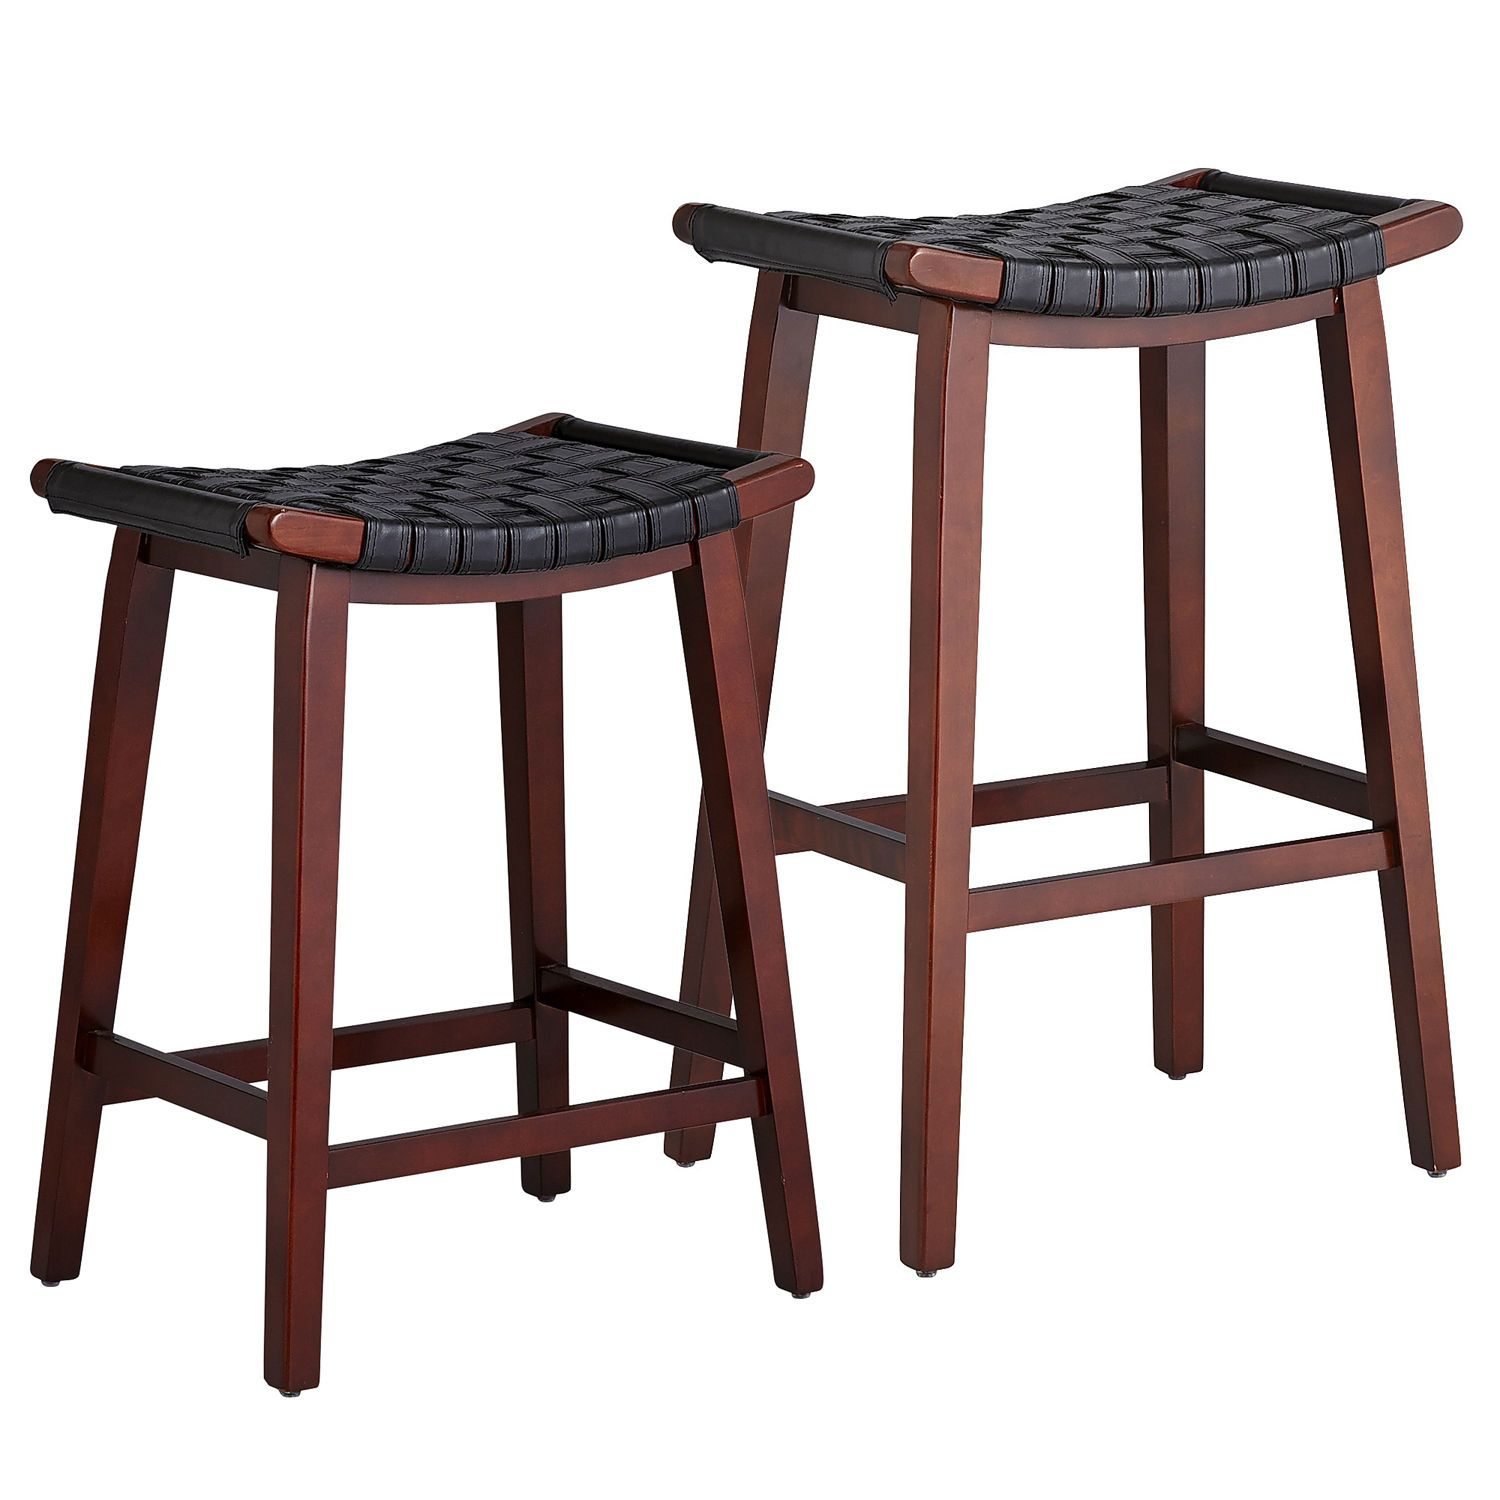 Terrific Keating Backless Bar Counter Stools Black Pier 1 Gmtry Best Dining Table And Chair Ideas Images Gmtryco